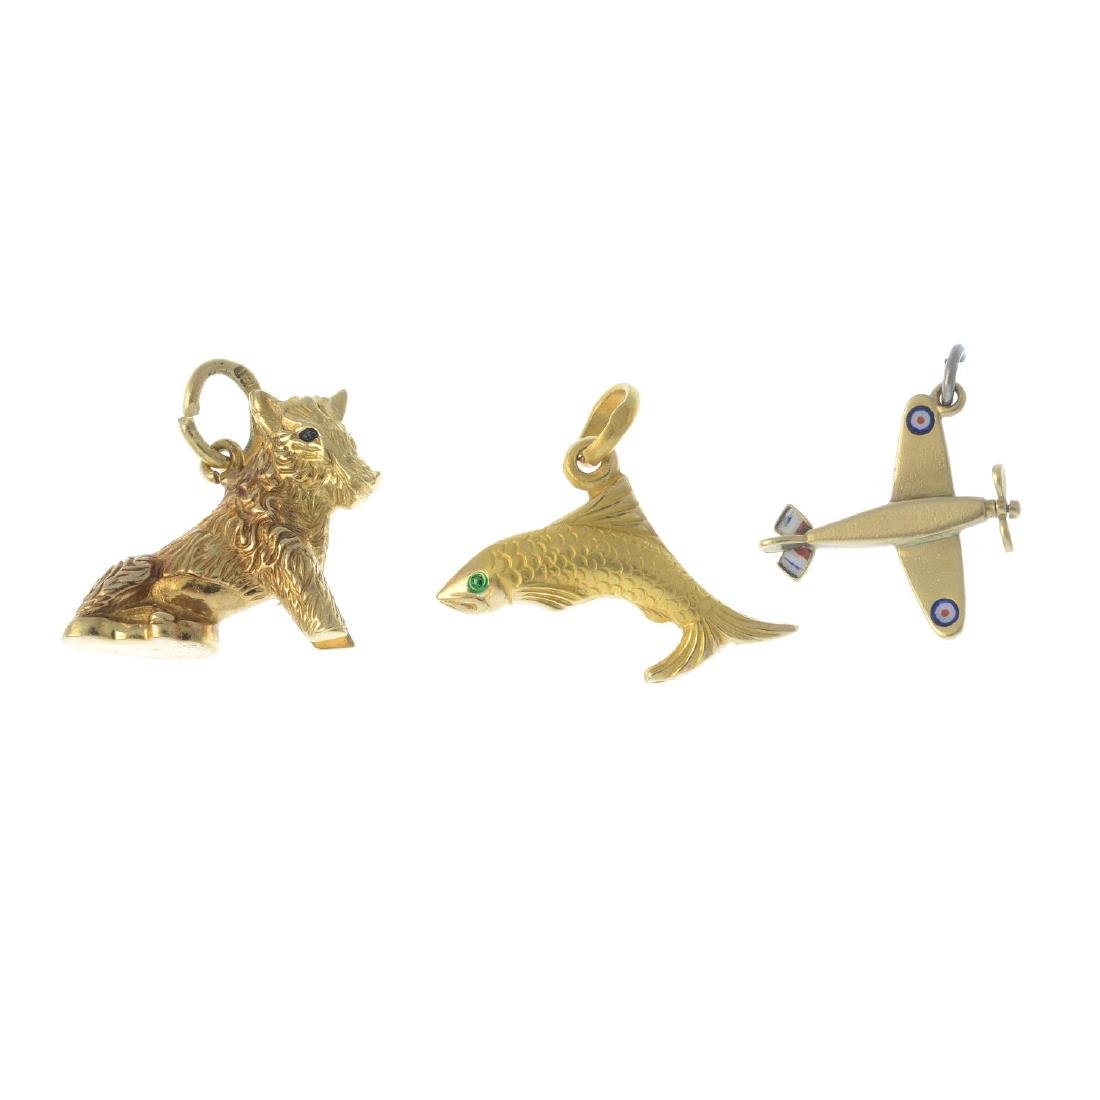 Four charms. To include a mid 20th century gold enamel